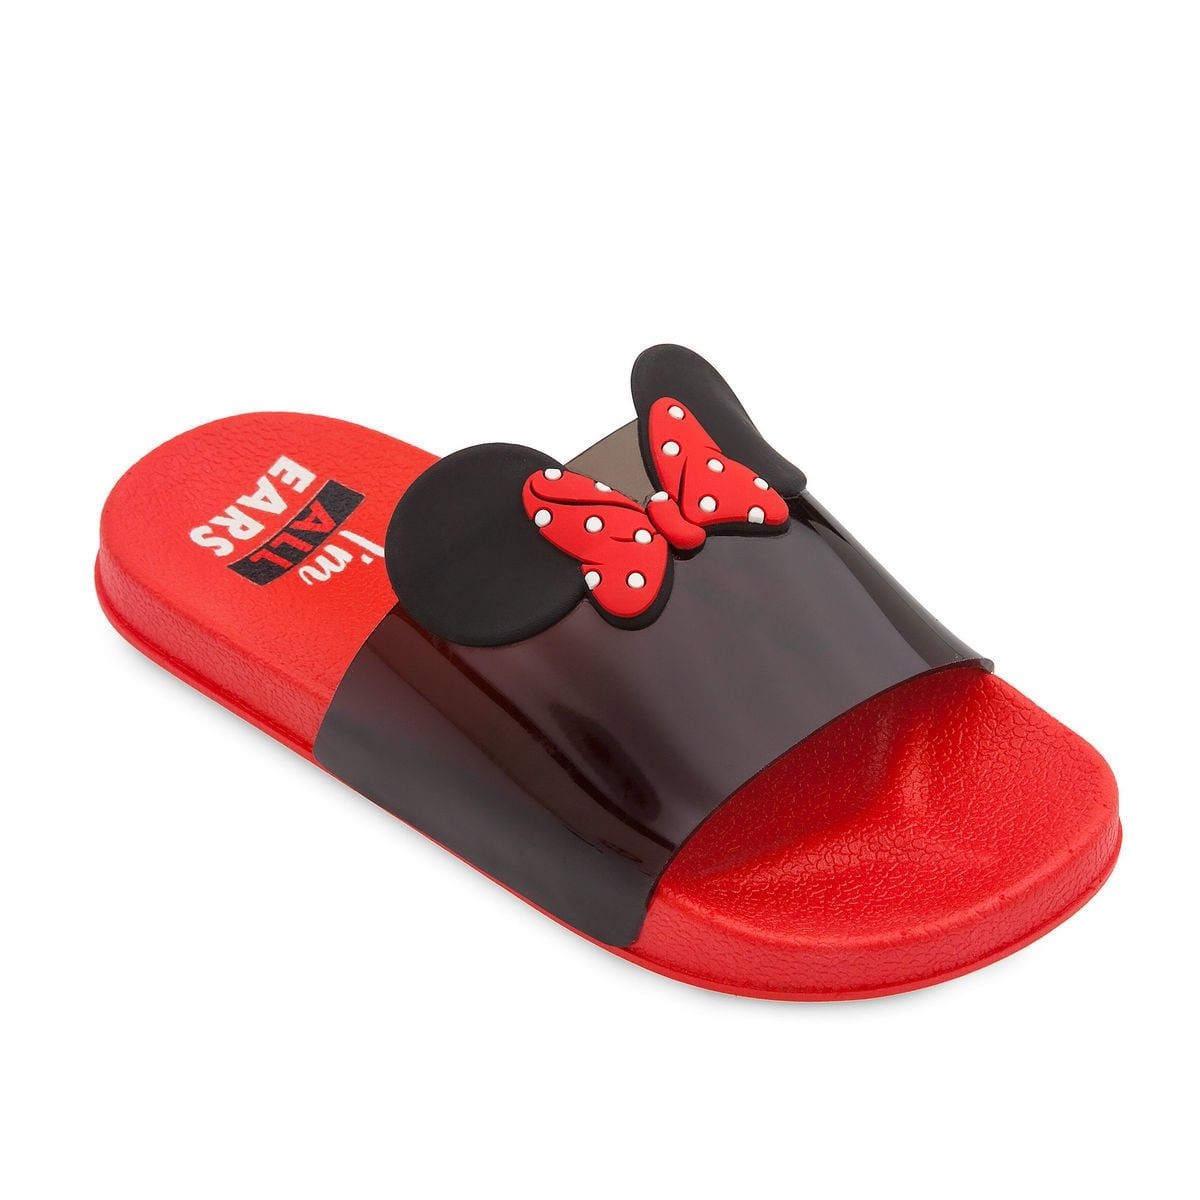 Minnie and Mickey Mouse Disney Boys and Girls Soft Plush Slip-On Slippers